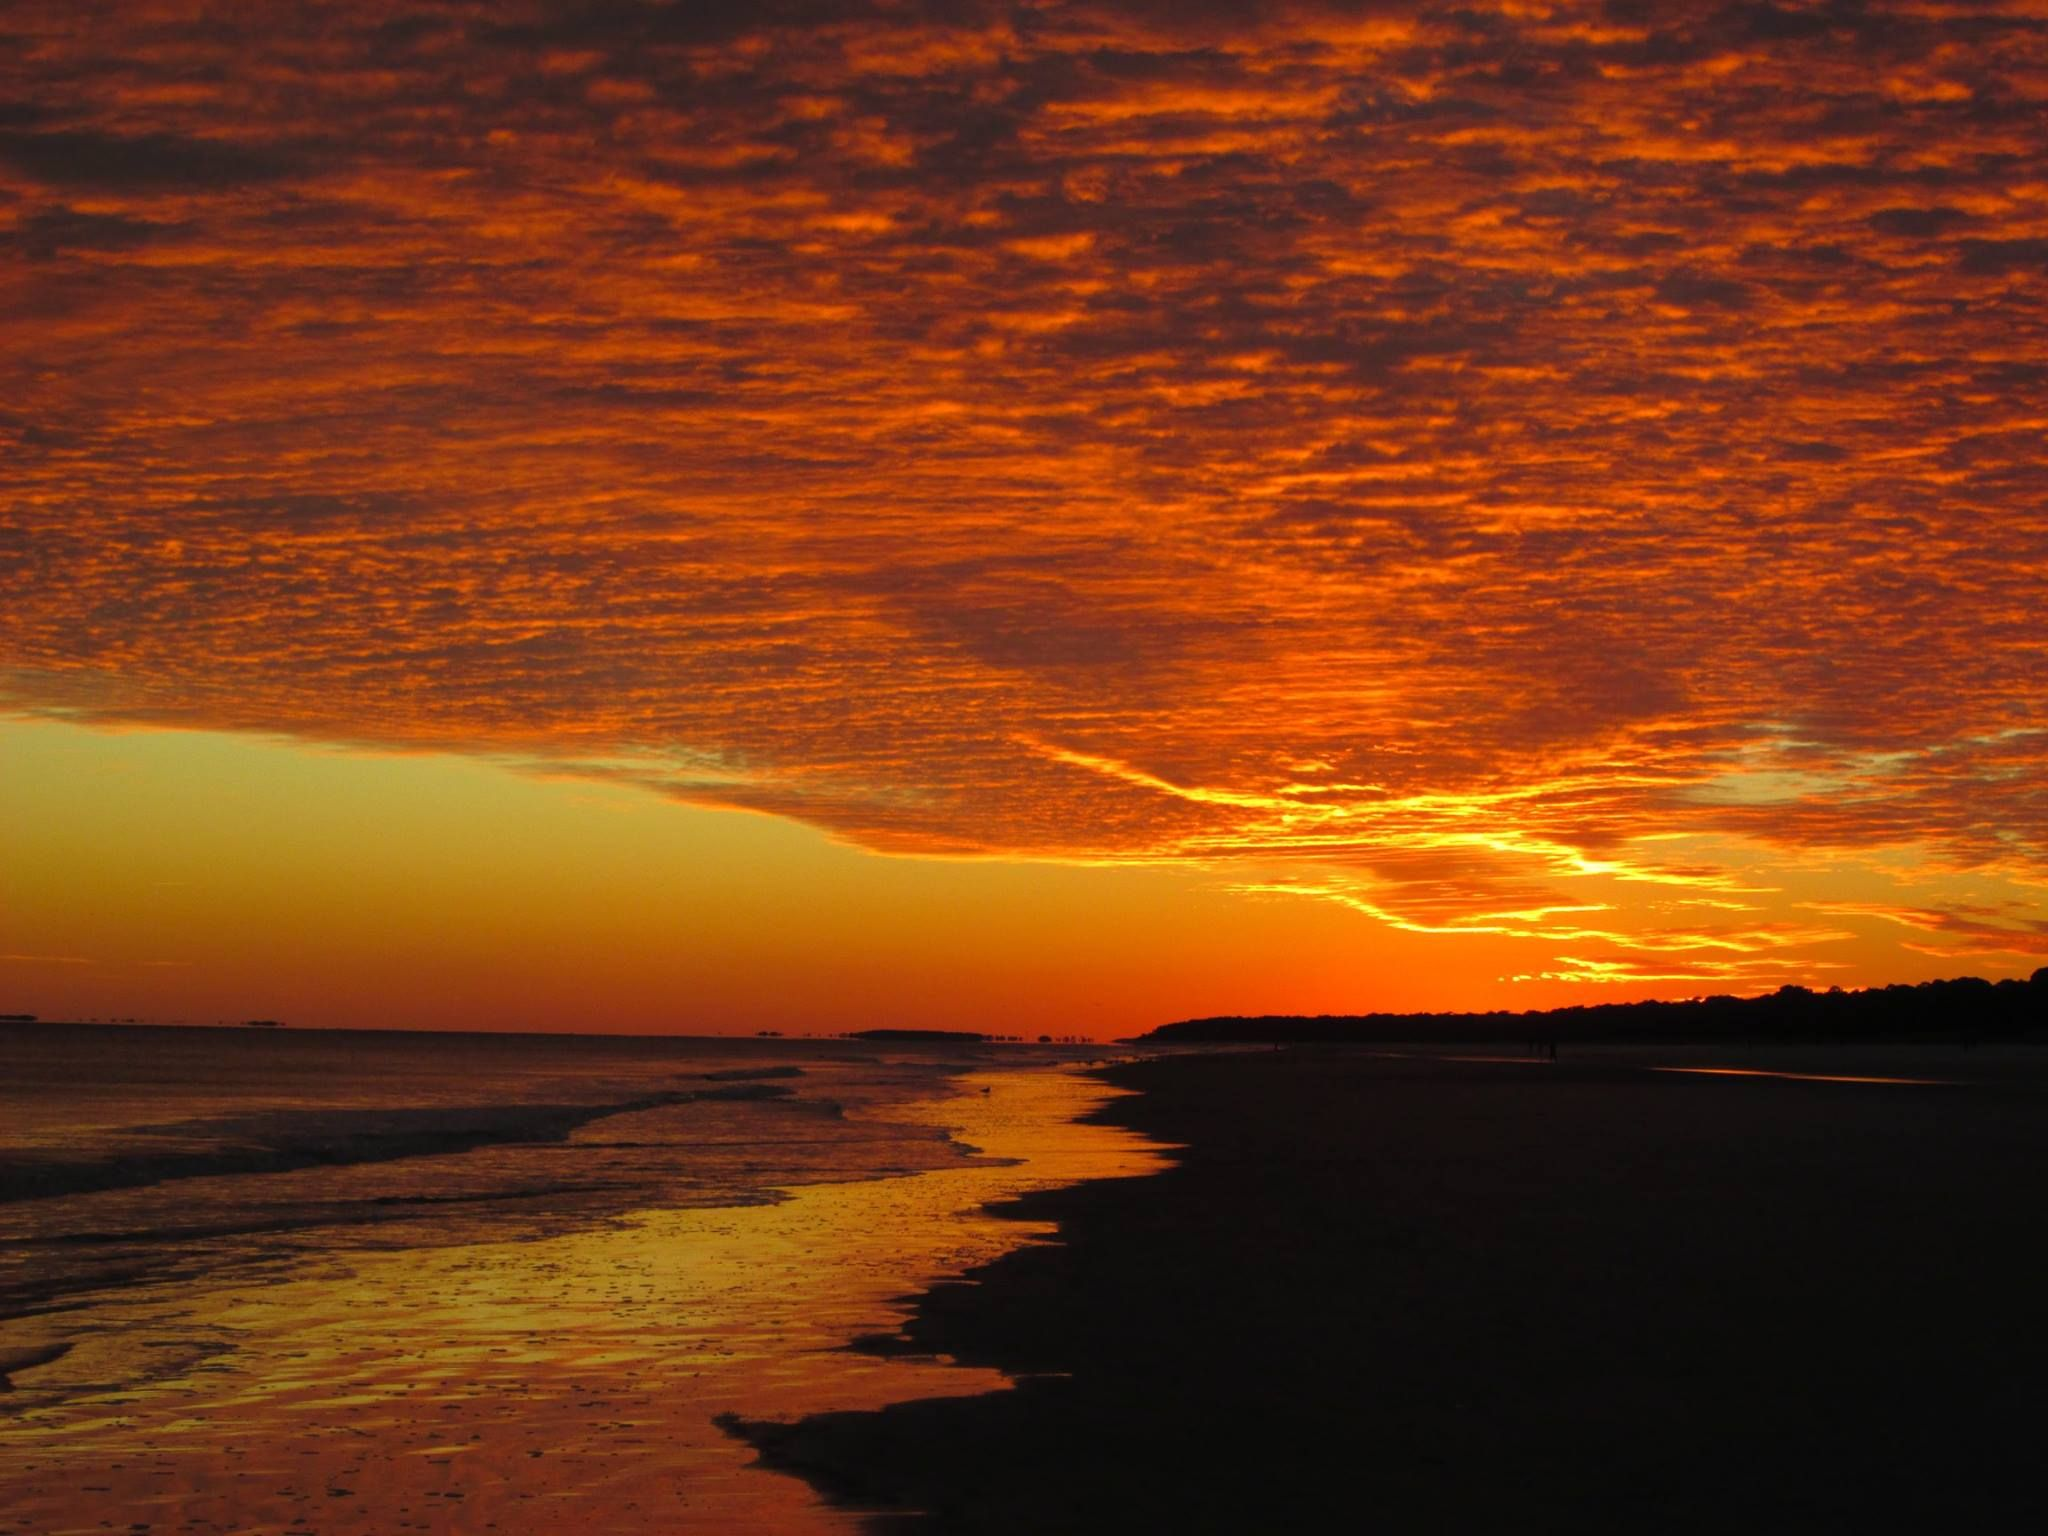 Bright orange skies in Hilton Head, South Carolina.